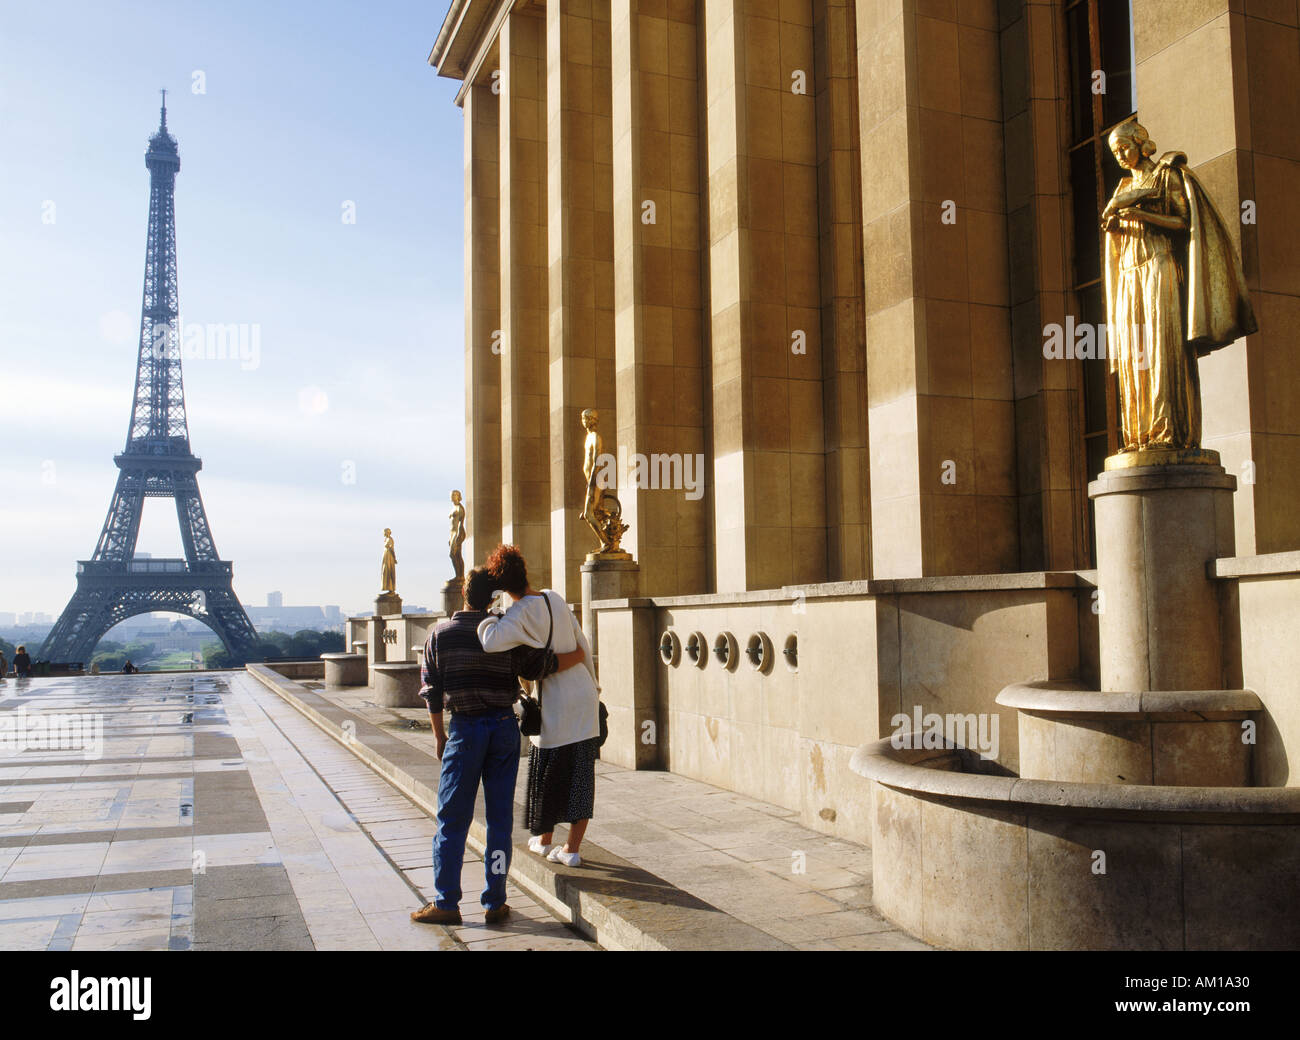 Couple at Palais Chaillot with Golden Figurines and Eiffel Tower - Stock Image